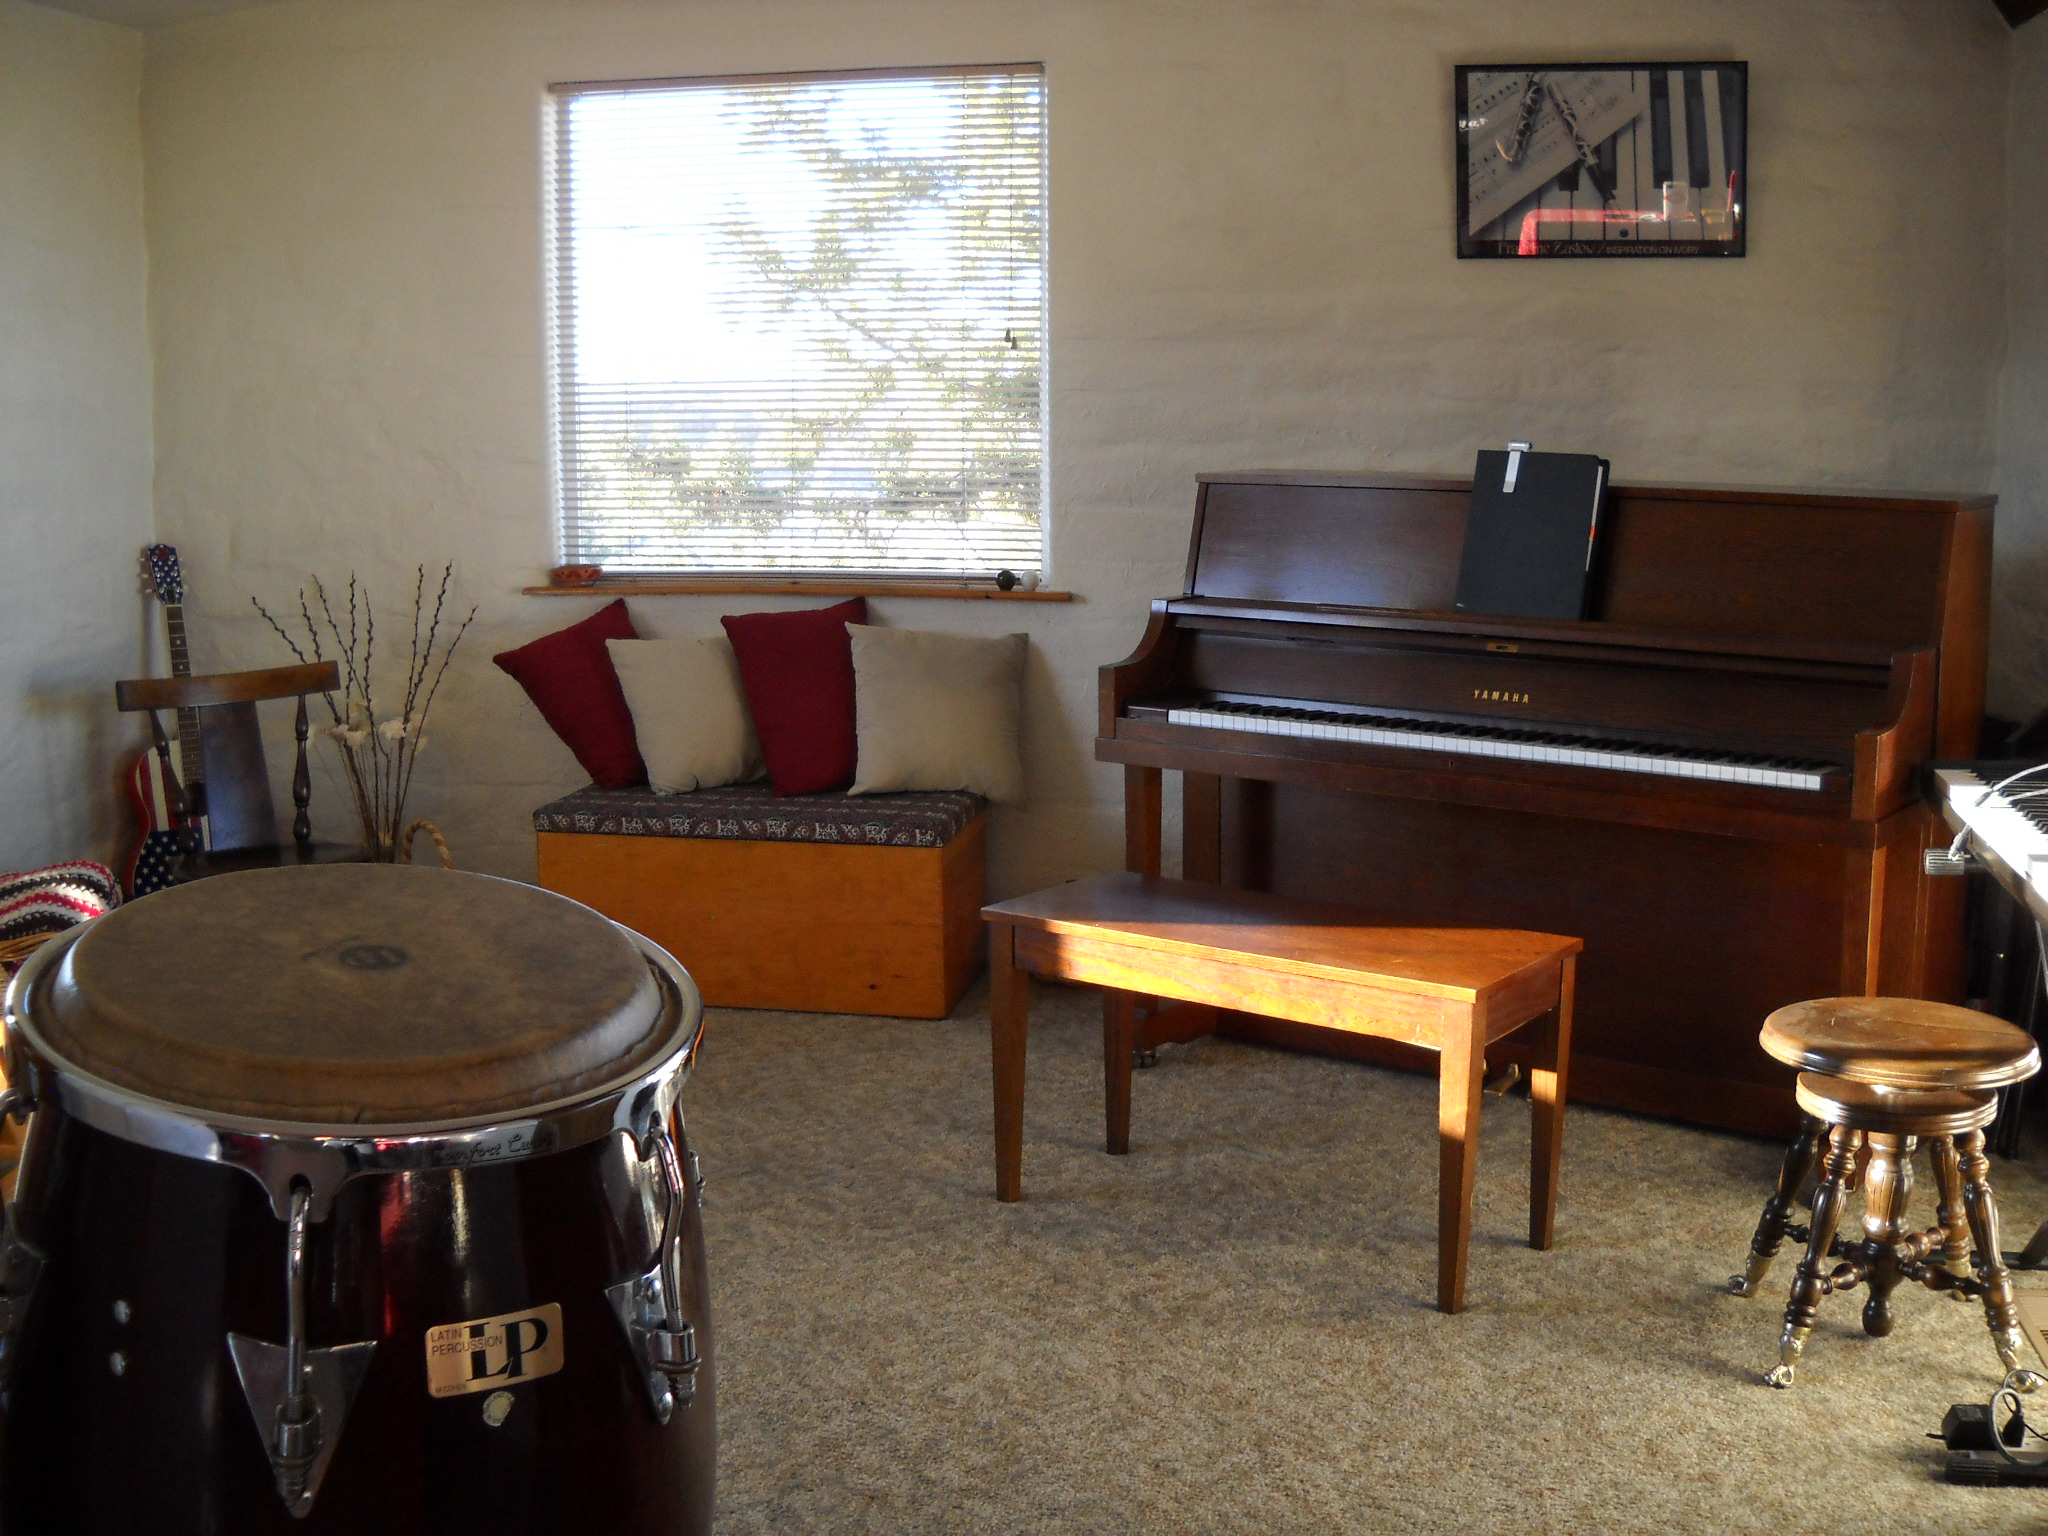 A delightful place to make music. Inside the adobe abode 2011-2014